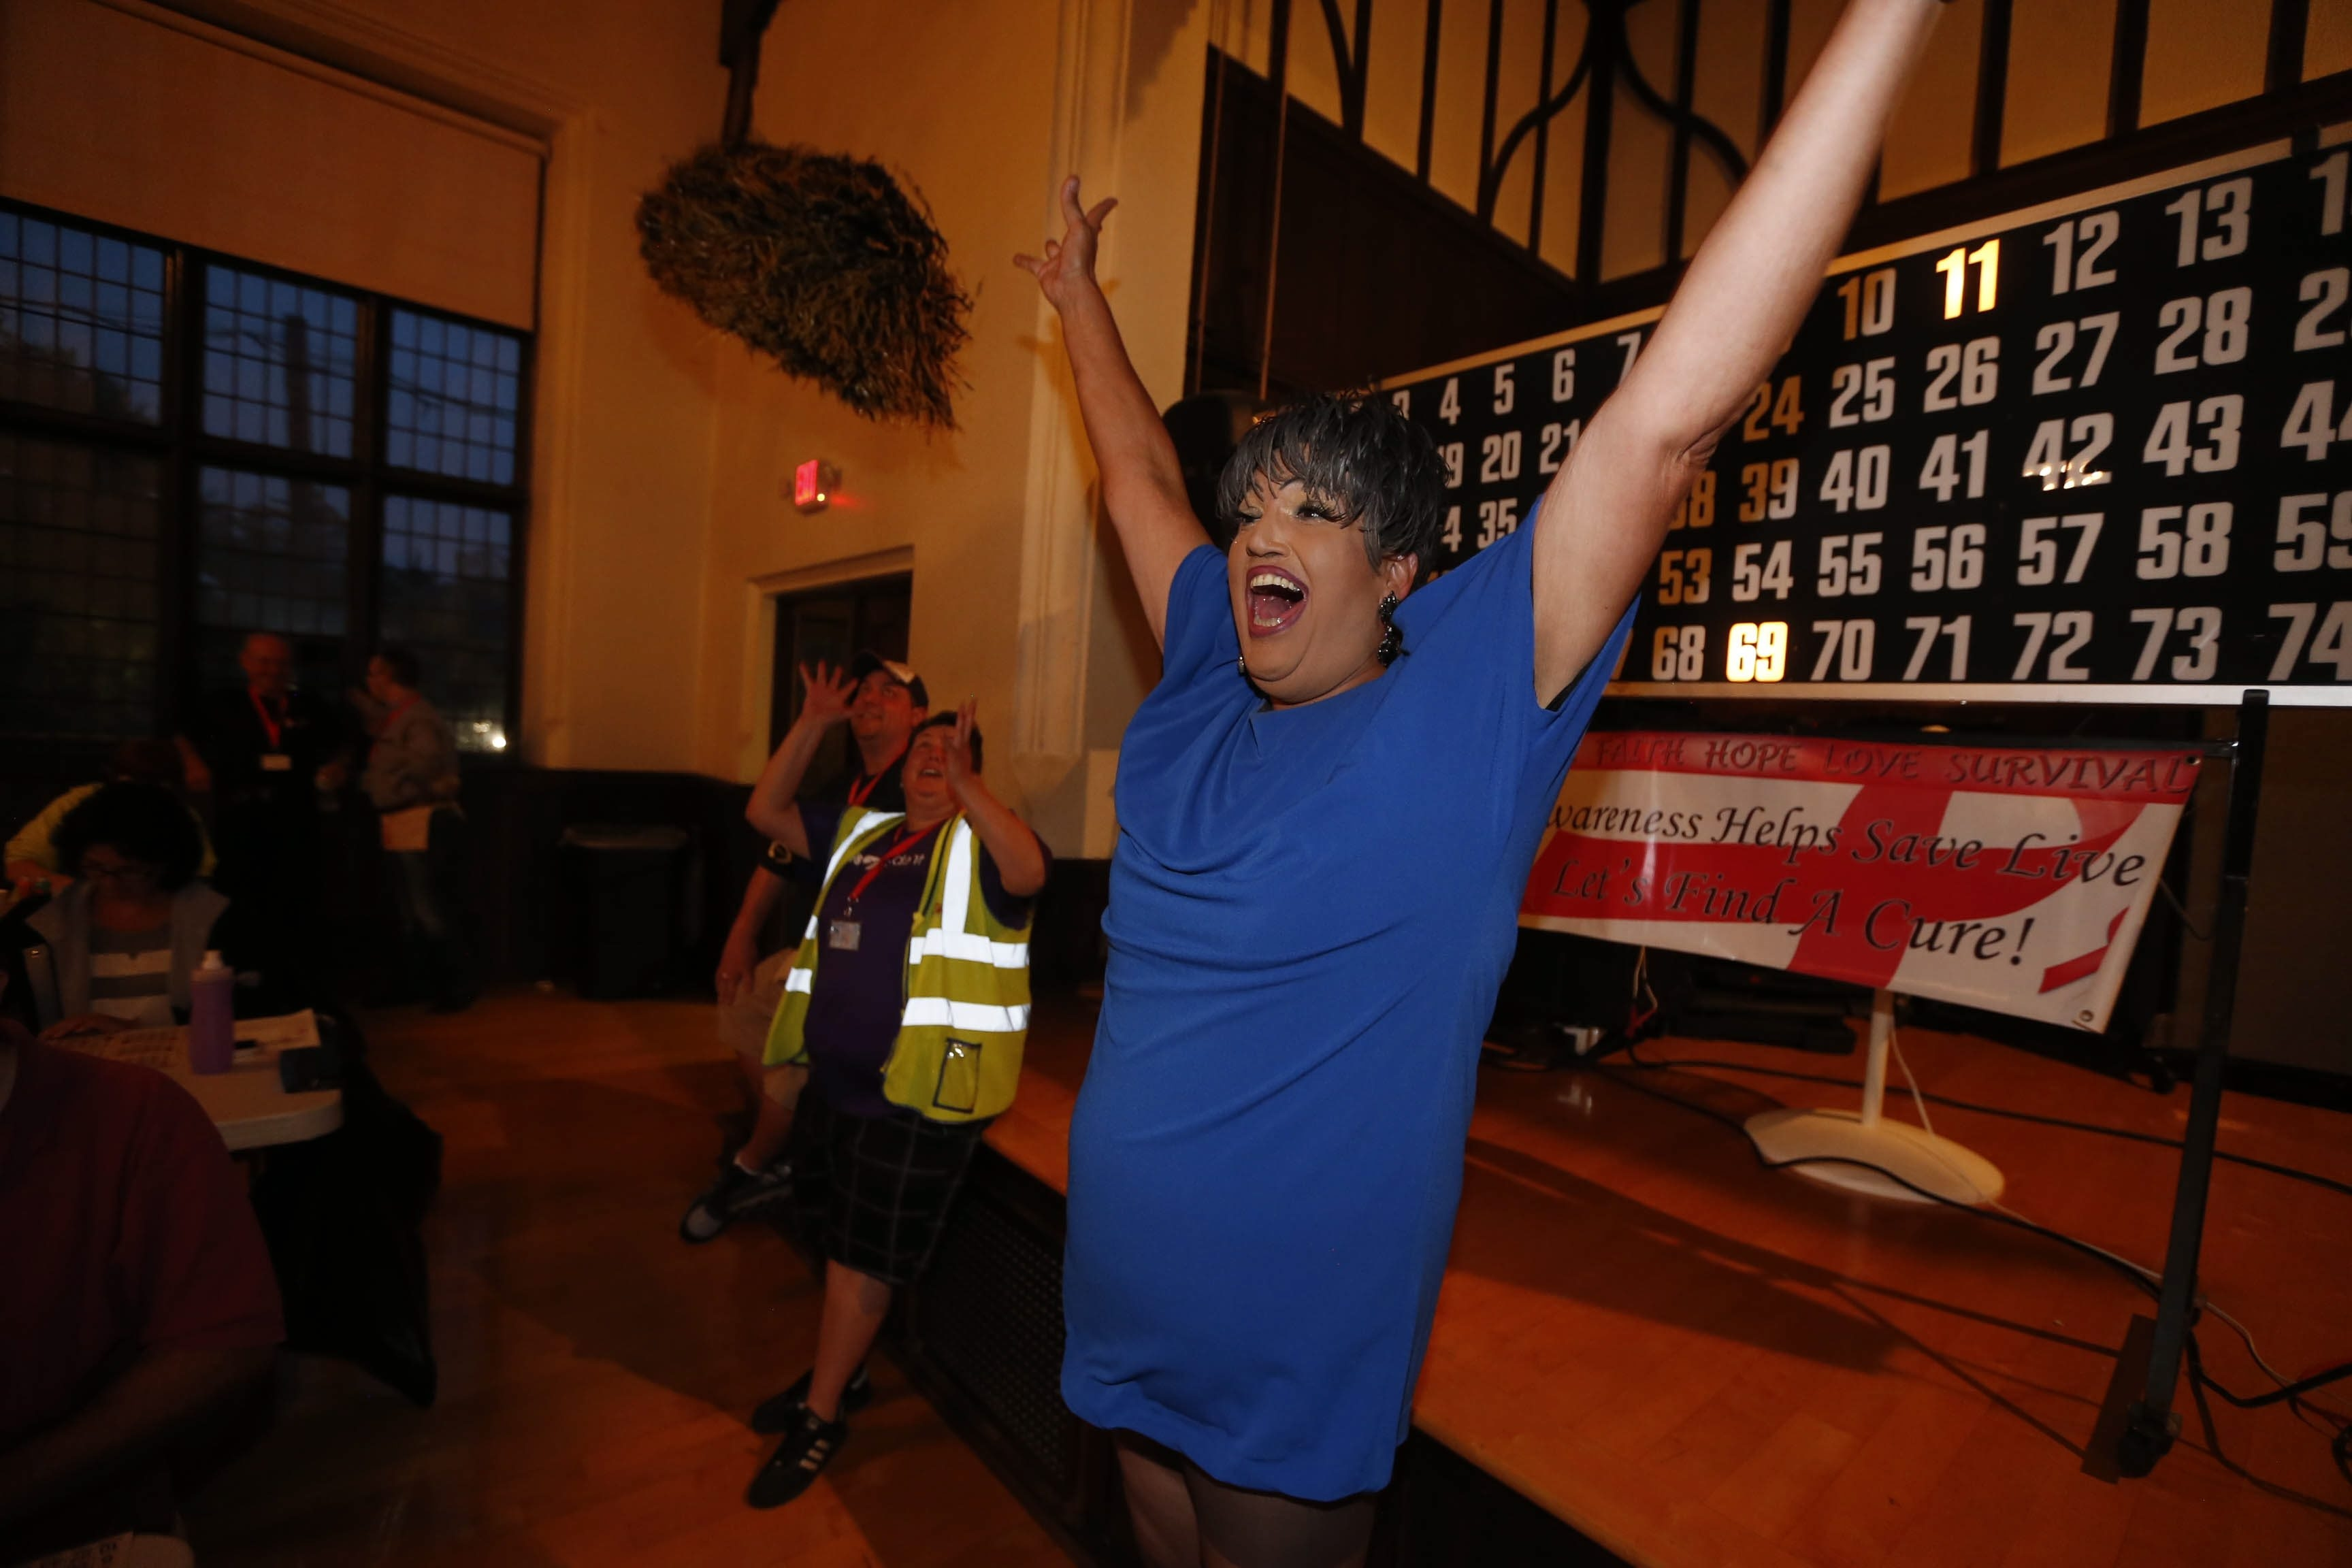 """""""I love entertaining. It's my persona. I like making people laugh and have a good time."""" – Emcee drag queen Gladys Over tells jokes and keeps the party going during Gay Bingo Night at Westminster Presbyterian Church."""